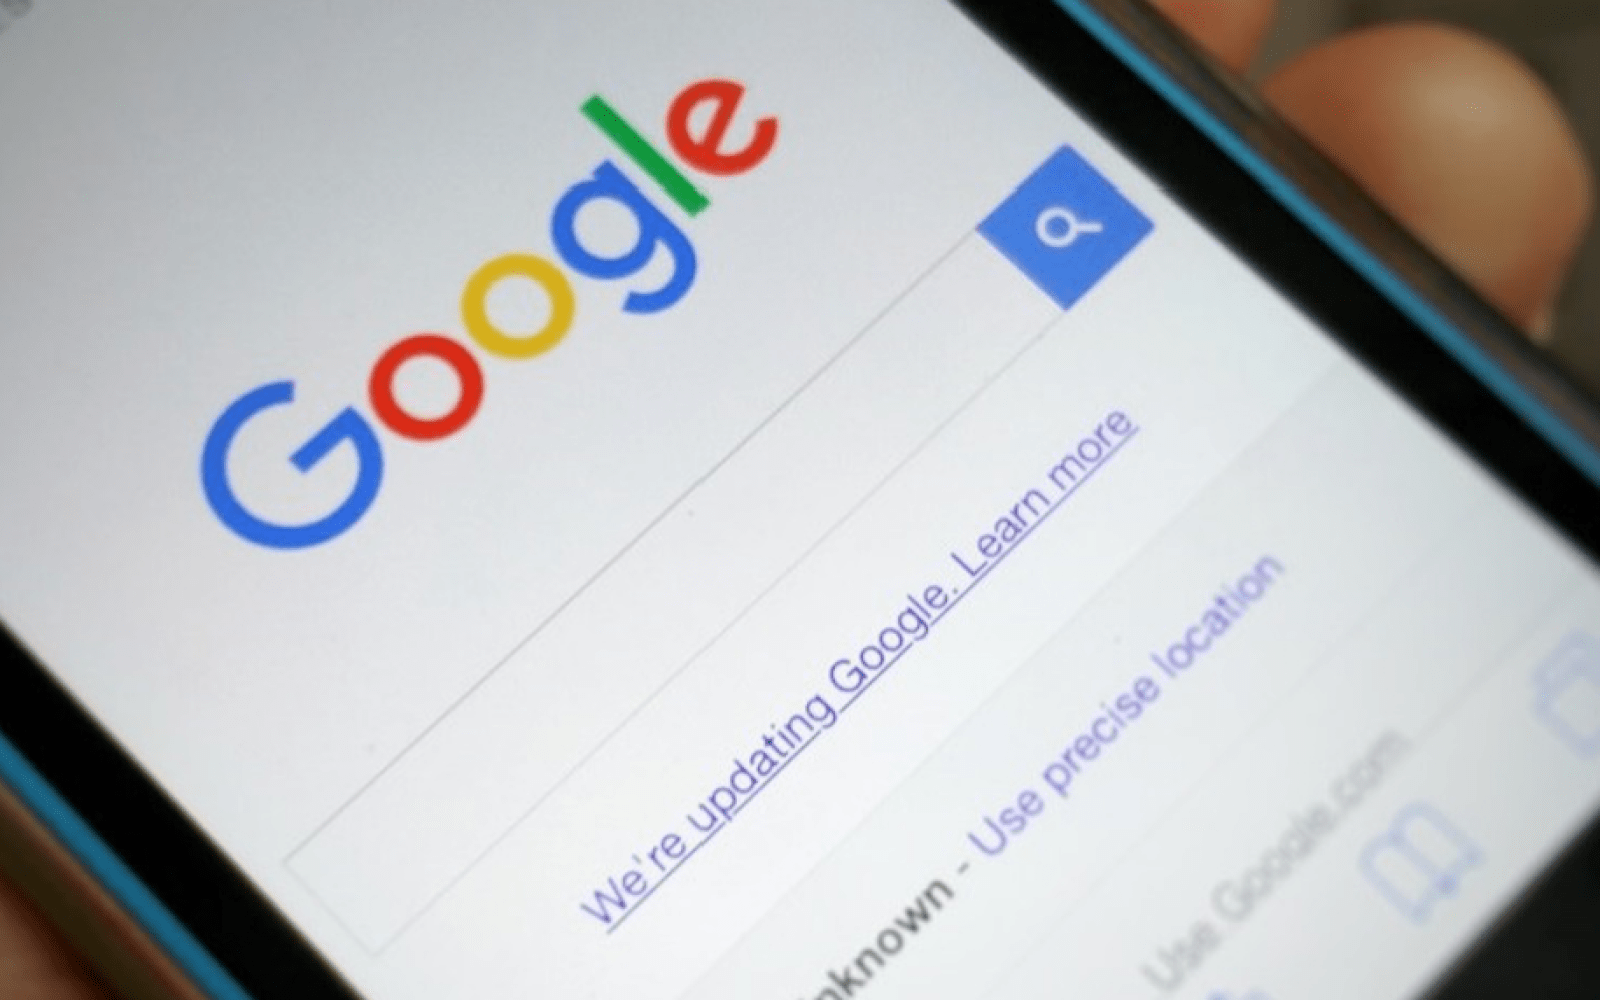 Google paid Apple $1 billion in 2014 to keep it the default search engine on iOS devices